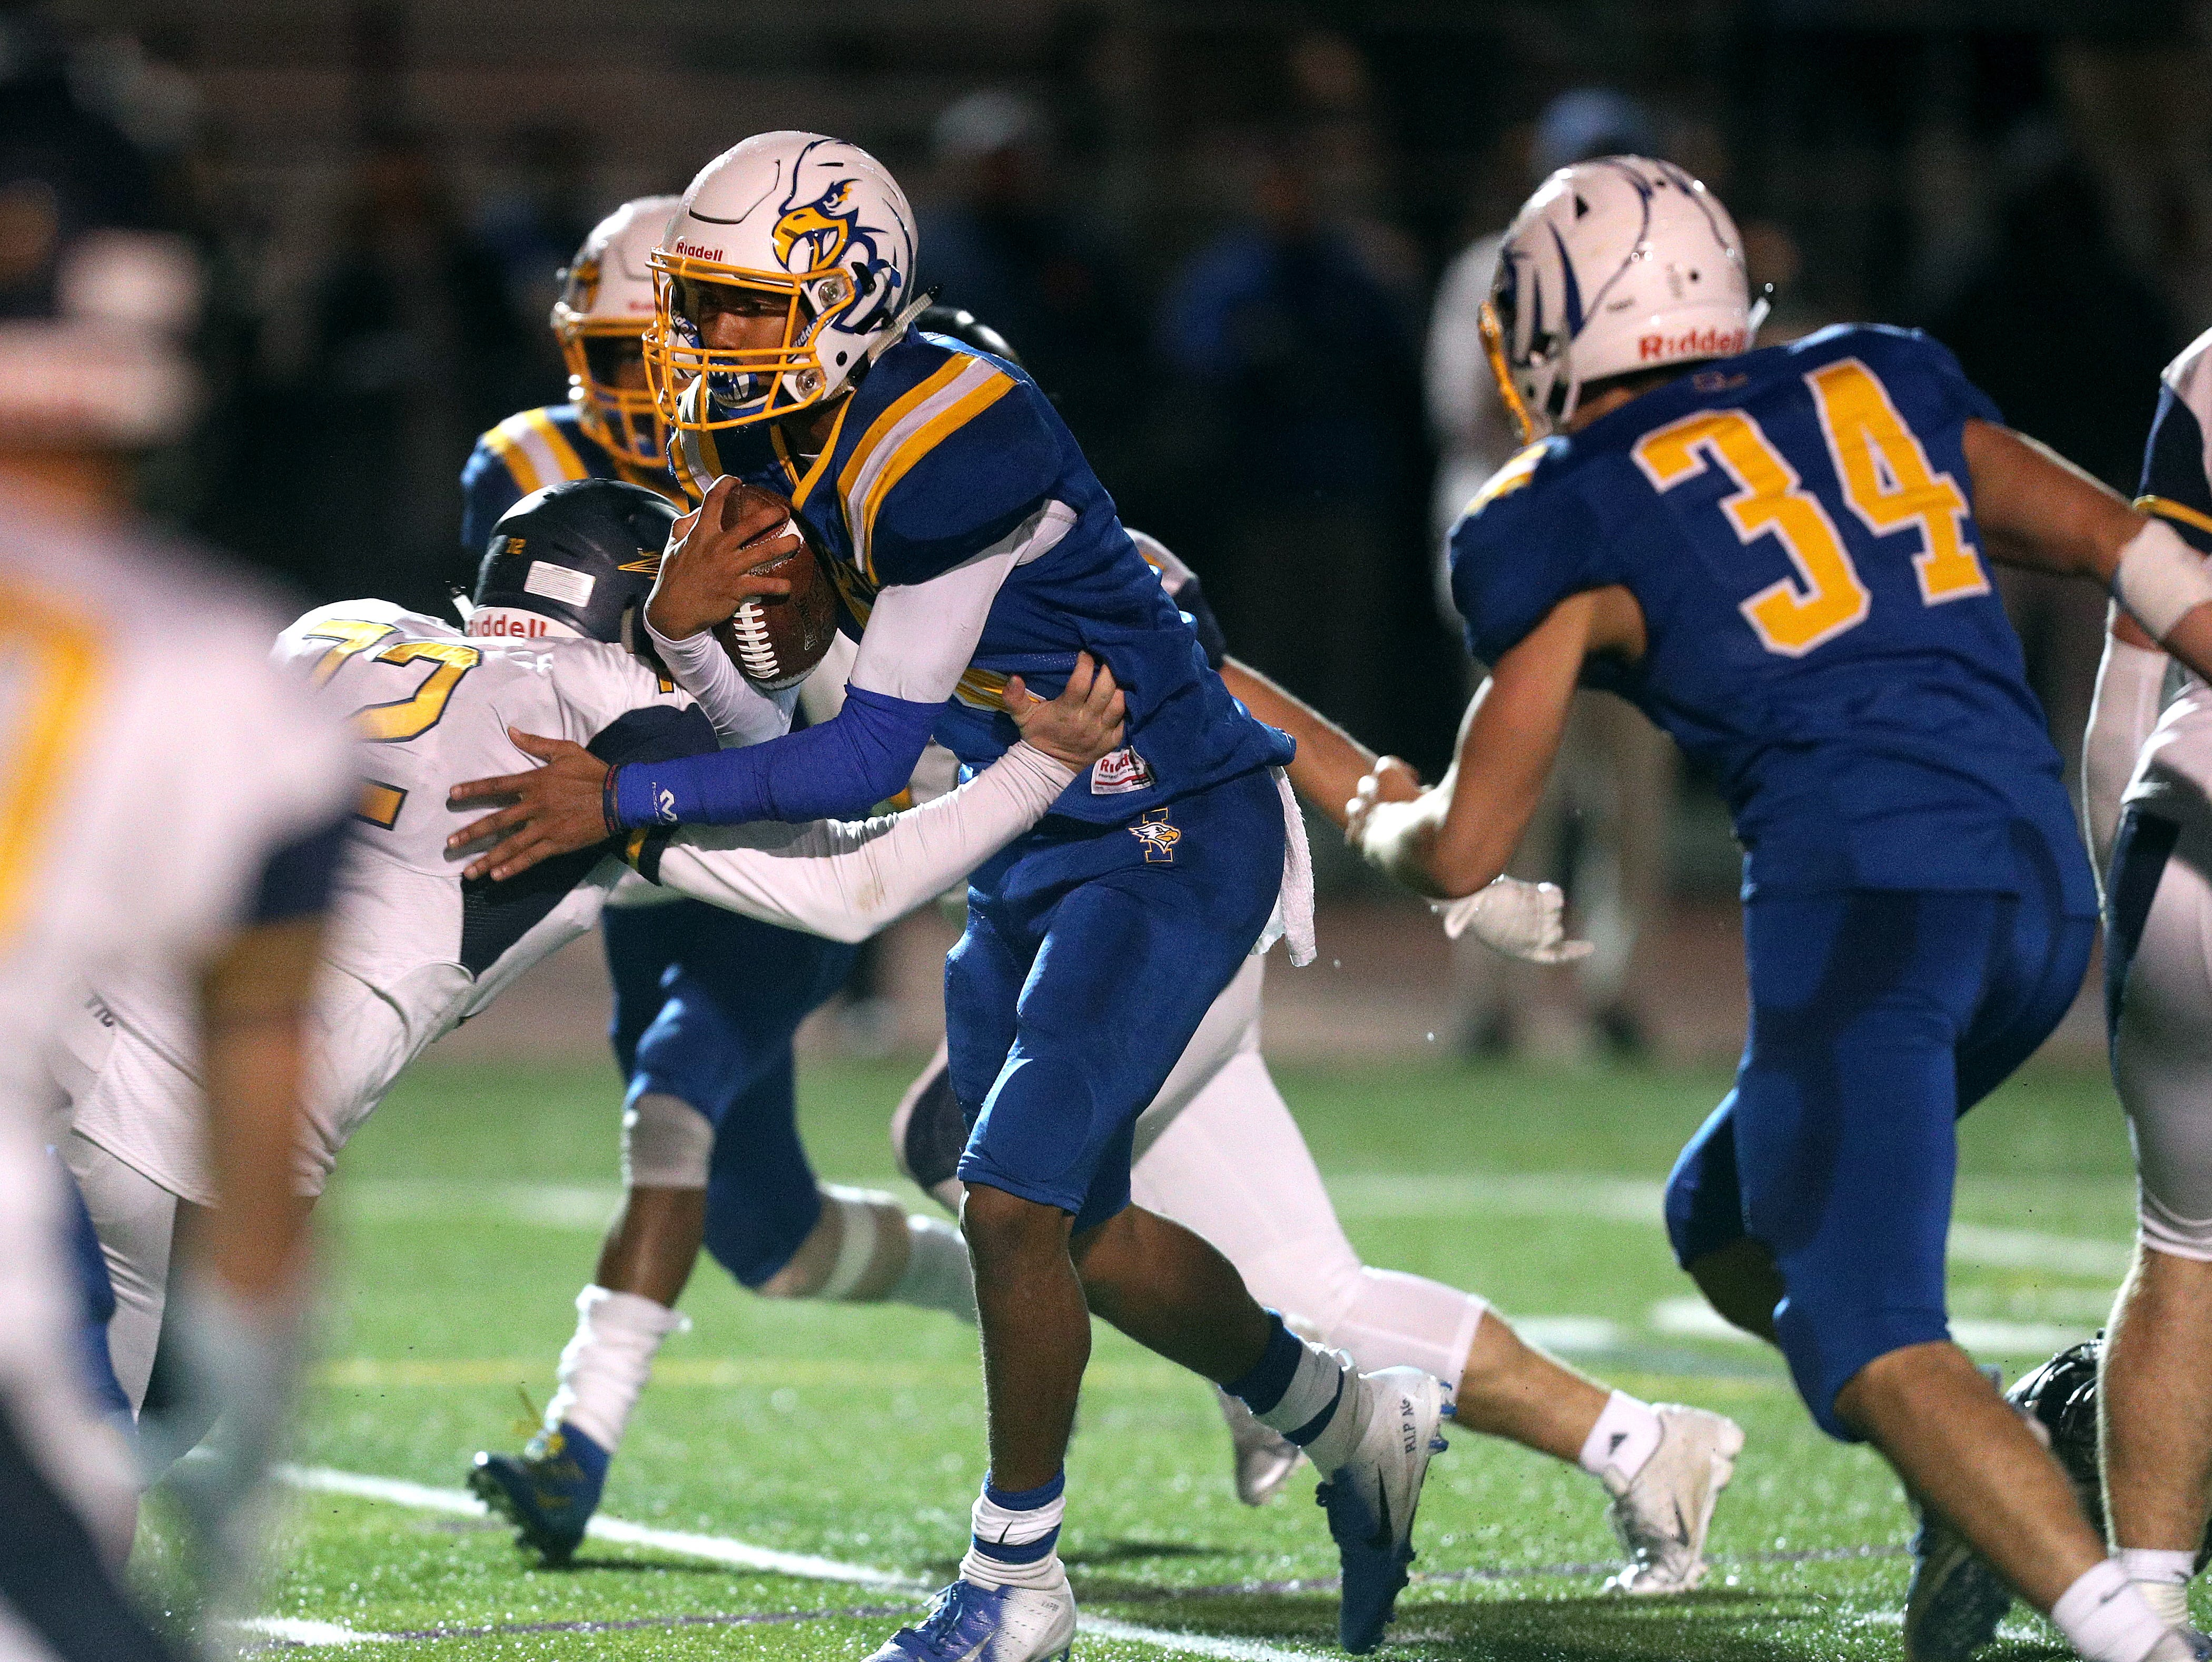 Irondequoit's Freddy June Jr. fights through a tackle to score the winning touchdown to beat Victor and the Class A title.